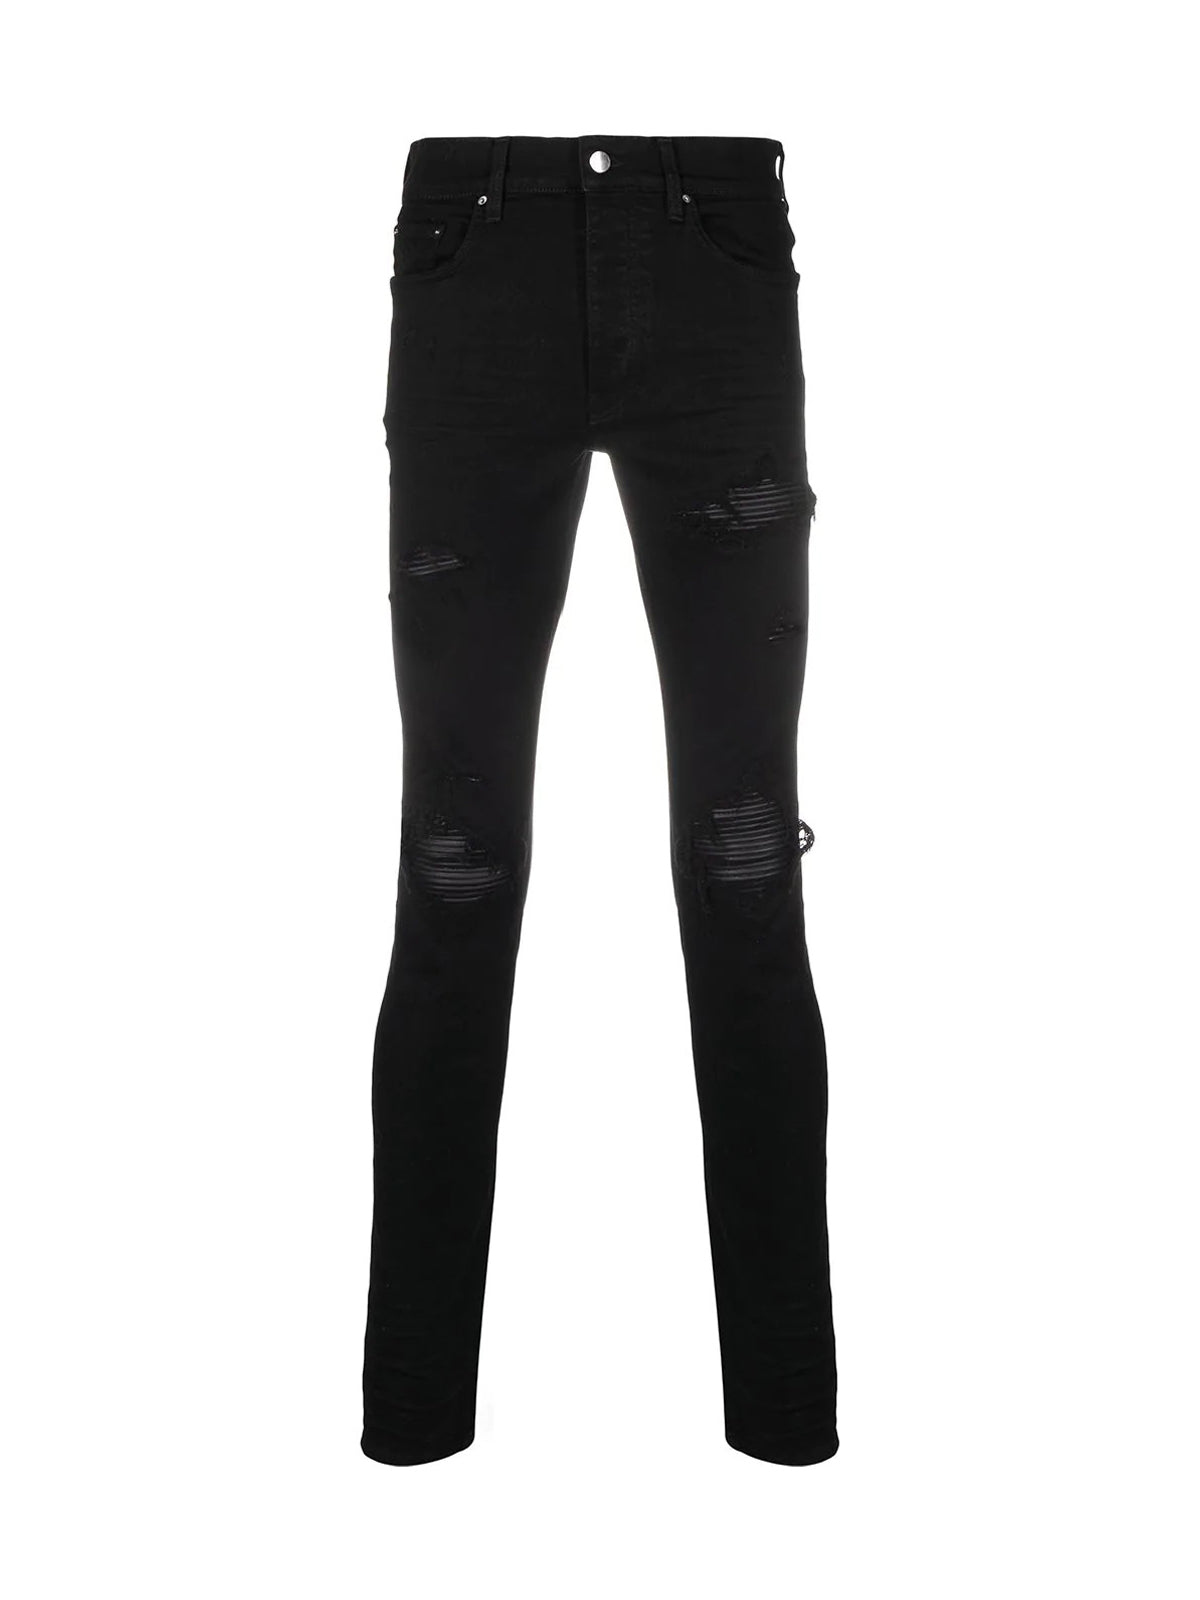 MX1 mid-rise skinny jeans